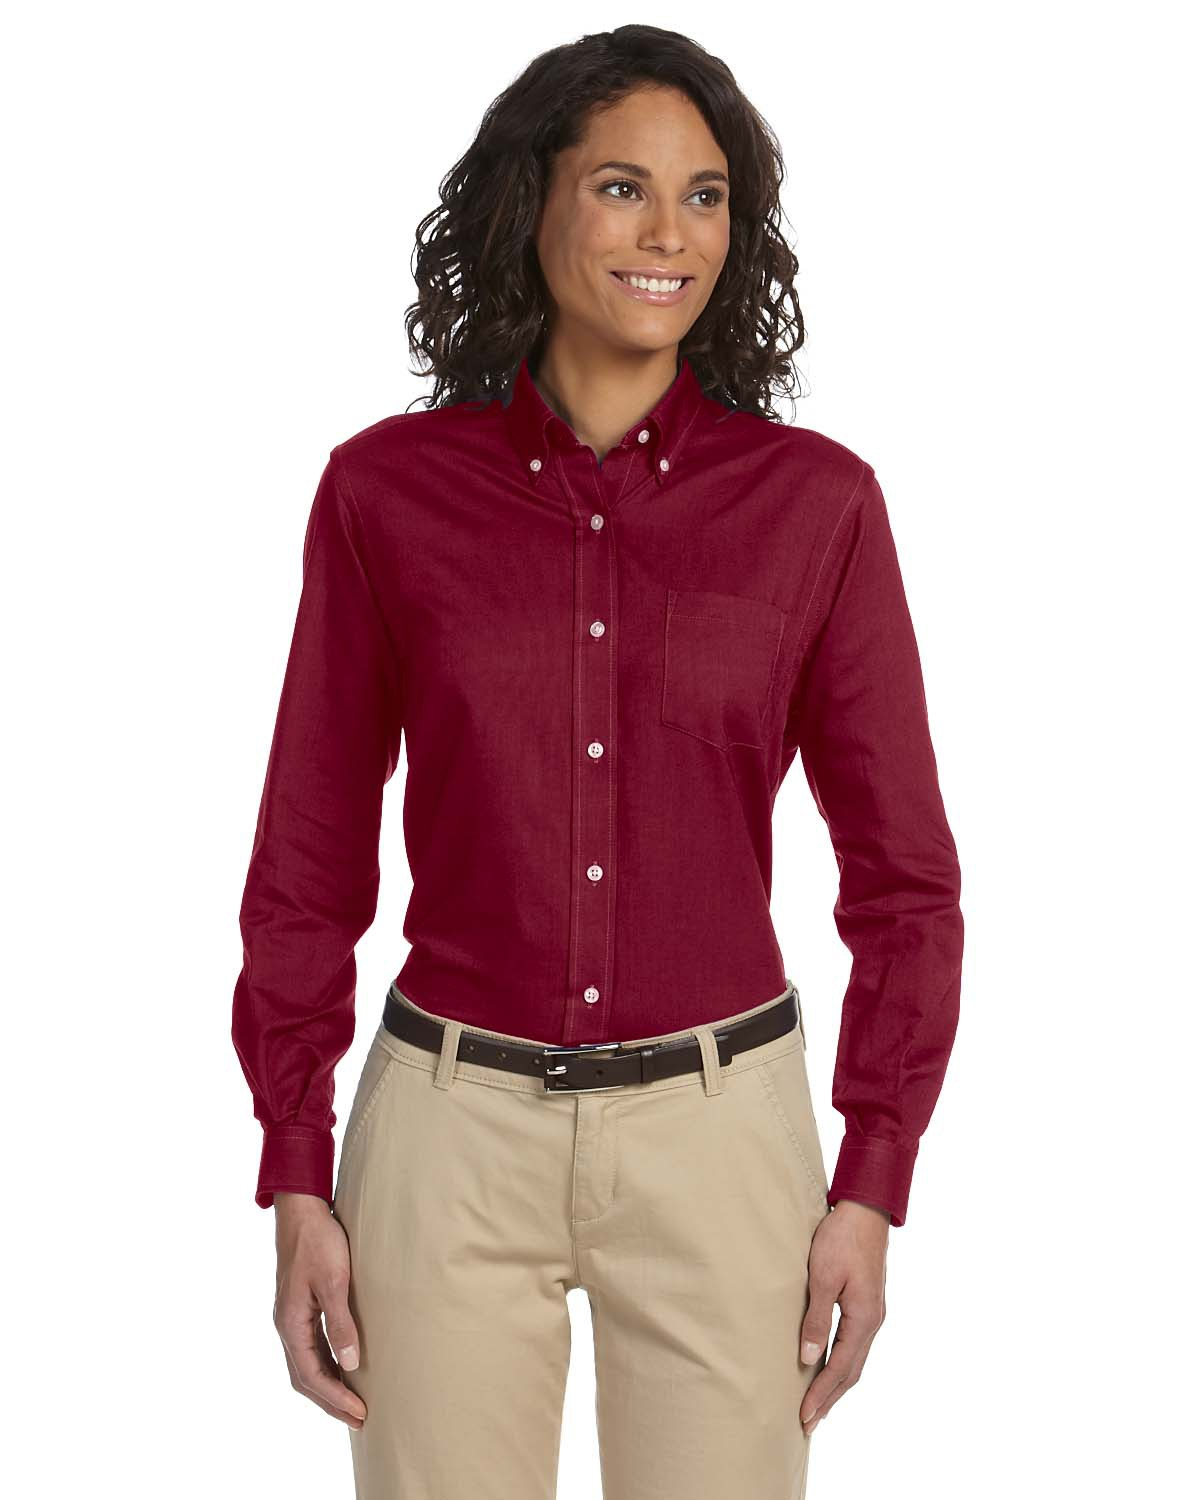 Van Heusen 59800  Women's Long-Sleeve Wrinkle-Resistant ...